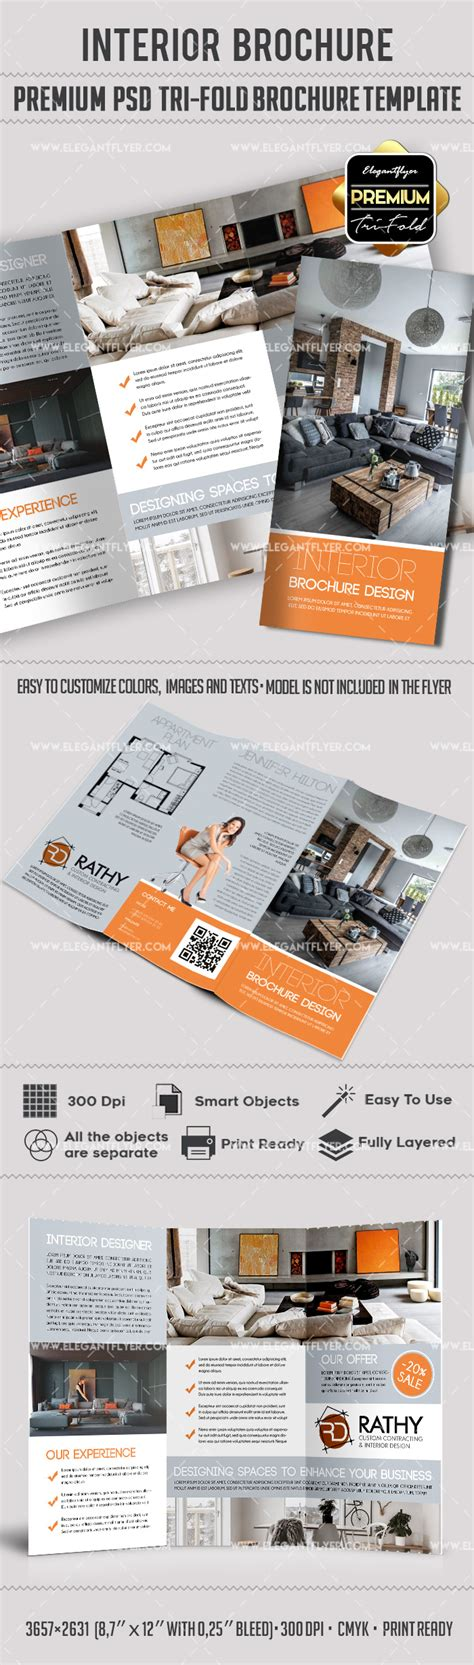 3d Brochure Templates Psd by Psd Brochure For Interior Design By Elegantflyer